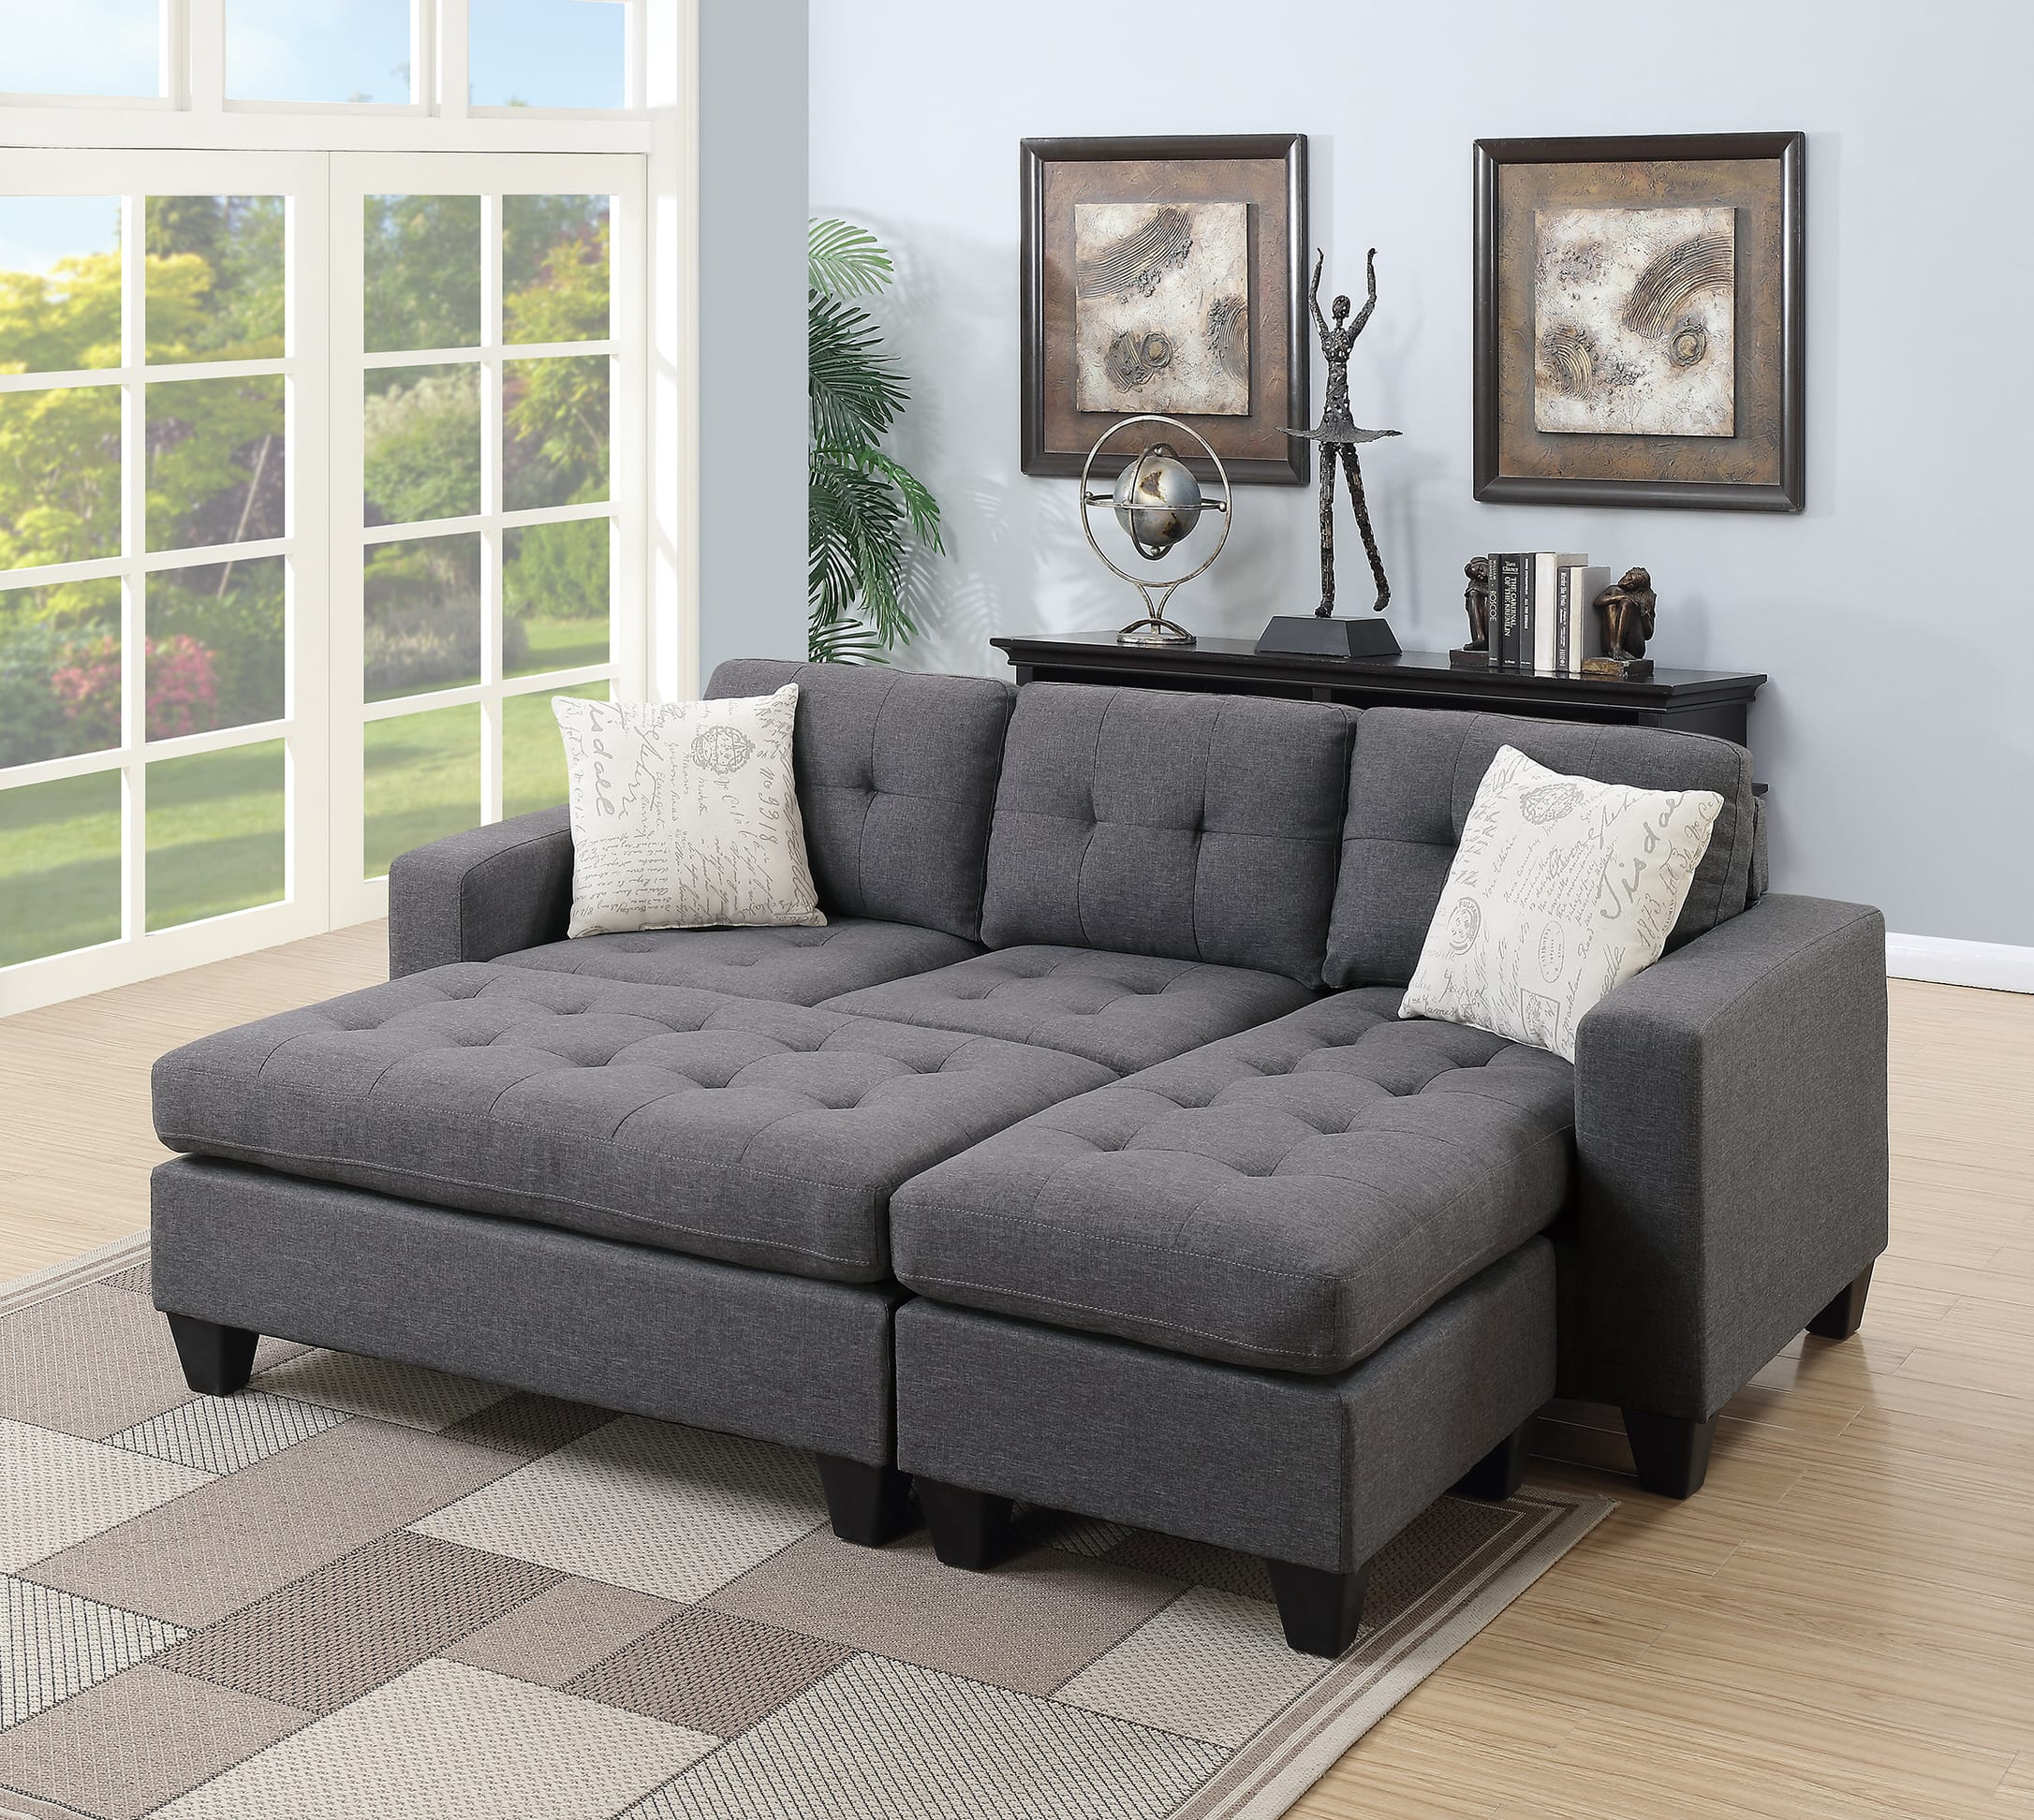 Sectional Gray Sofa Set: F6920 Blue Gray Sectional Sofa Set By Poundex